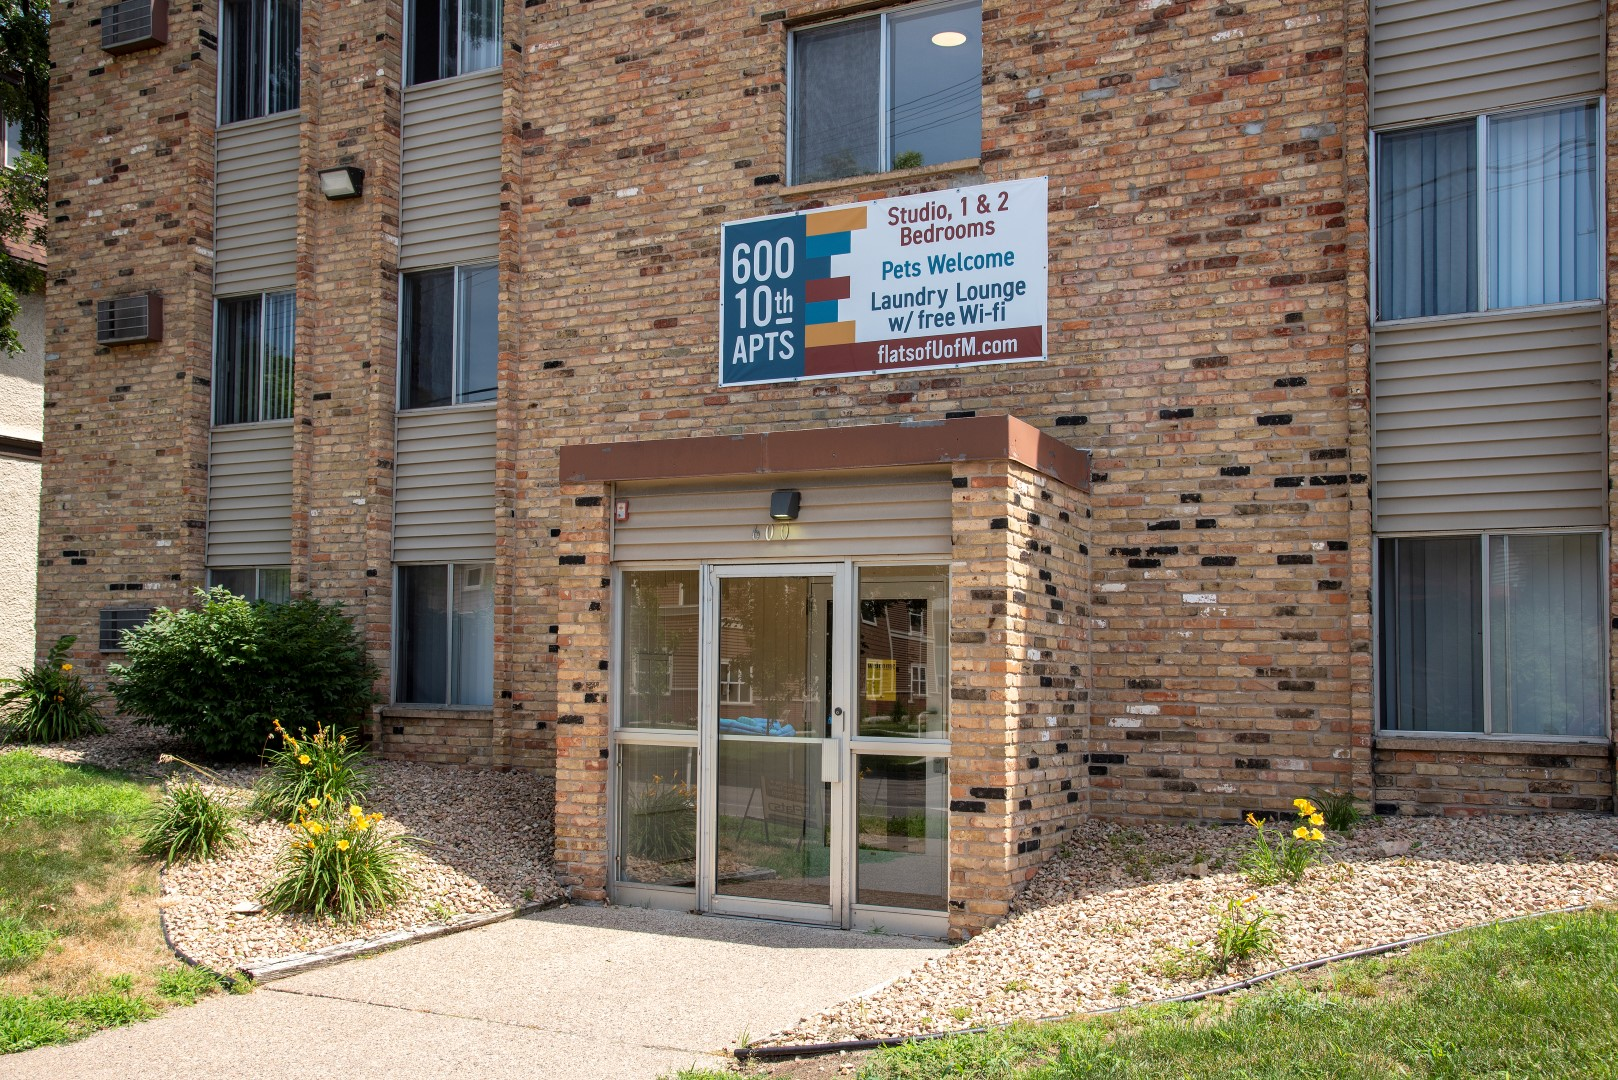 600 10th Ave Apartments for rent